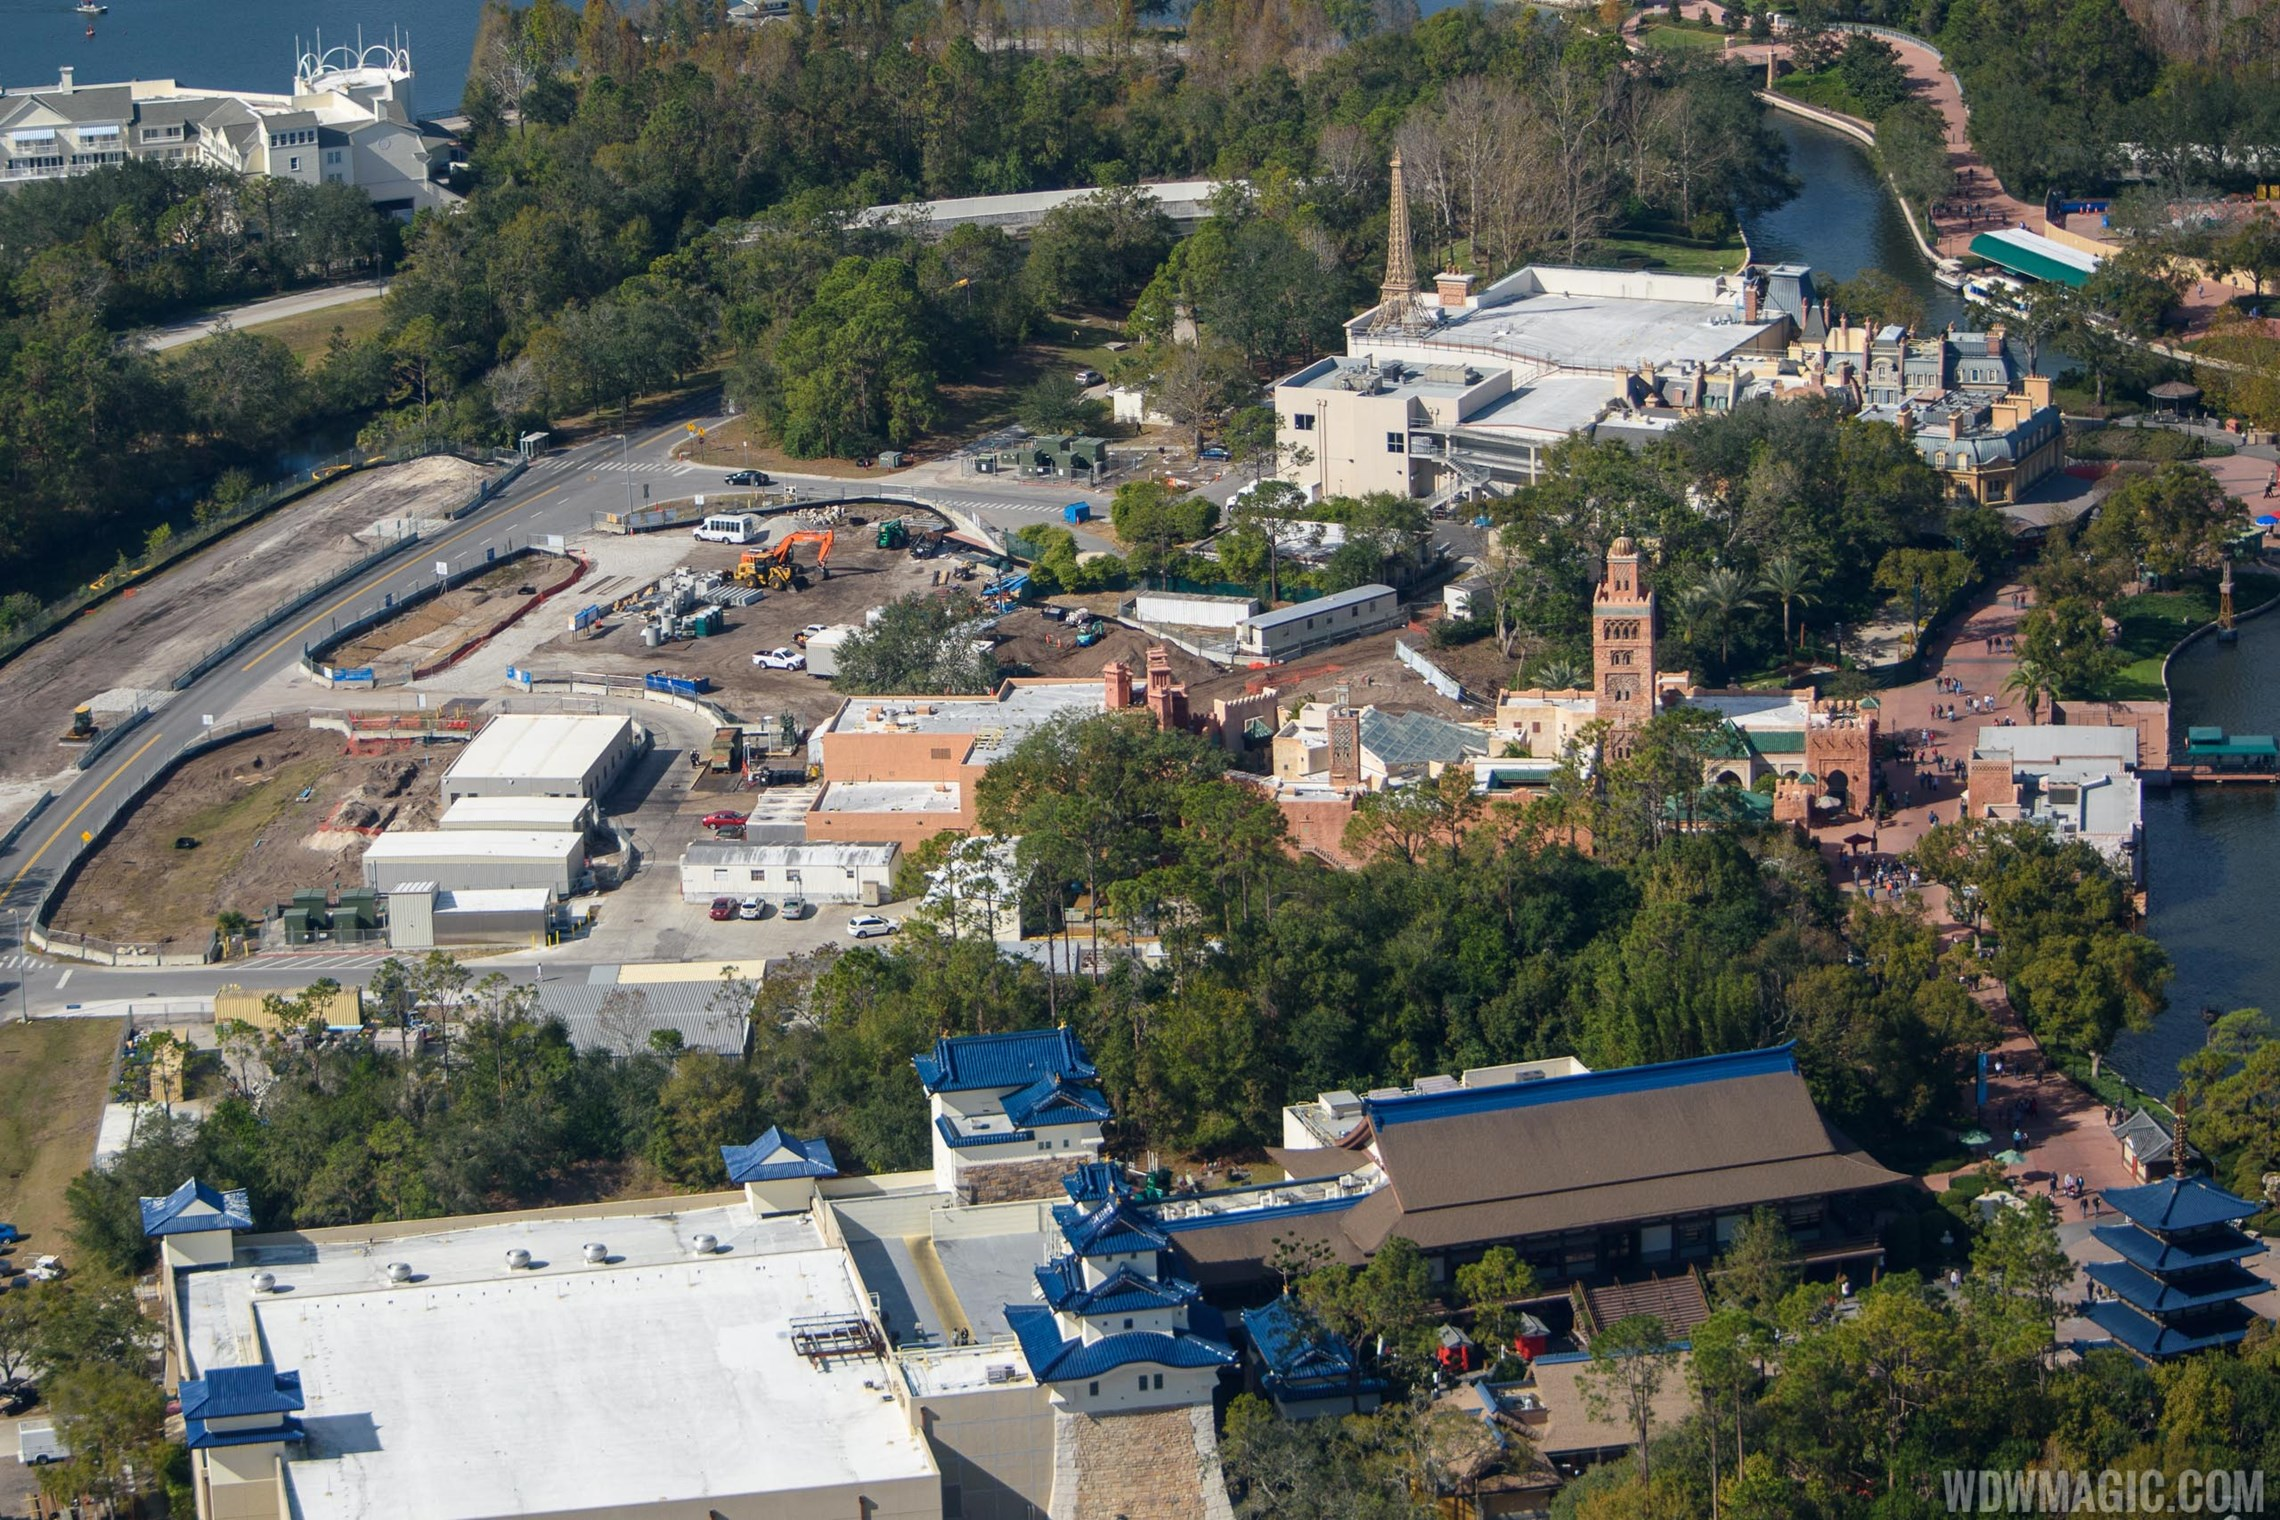 PHOTO - Aerial view of the Ratatouille construction site at Epcot